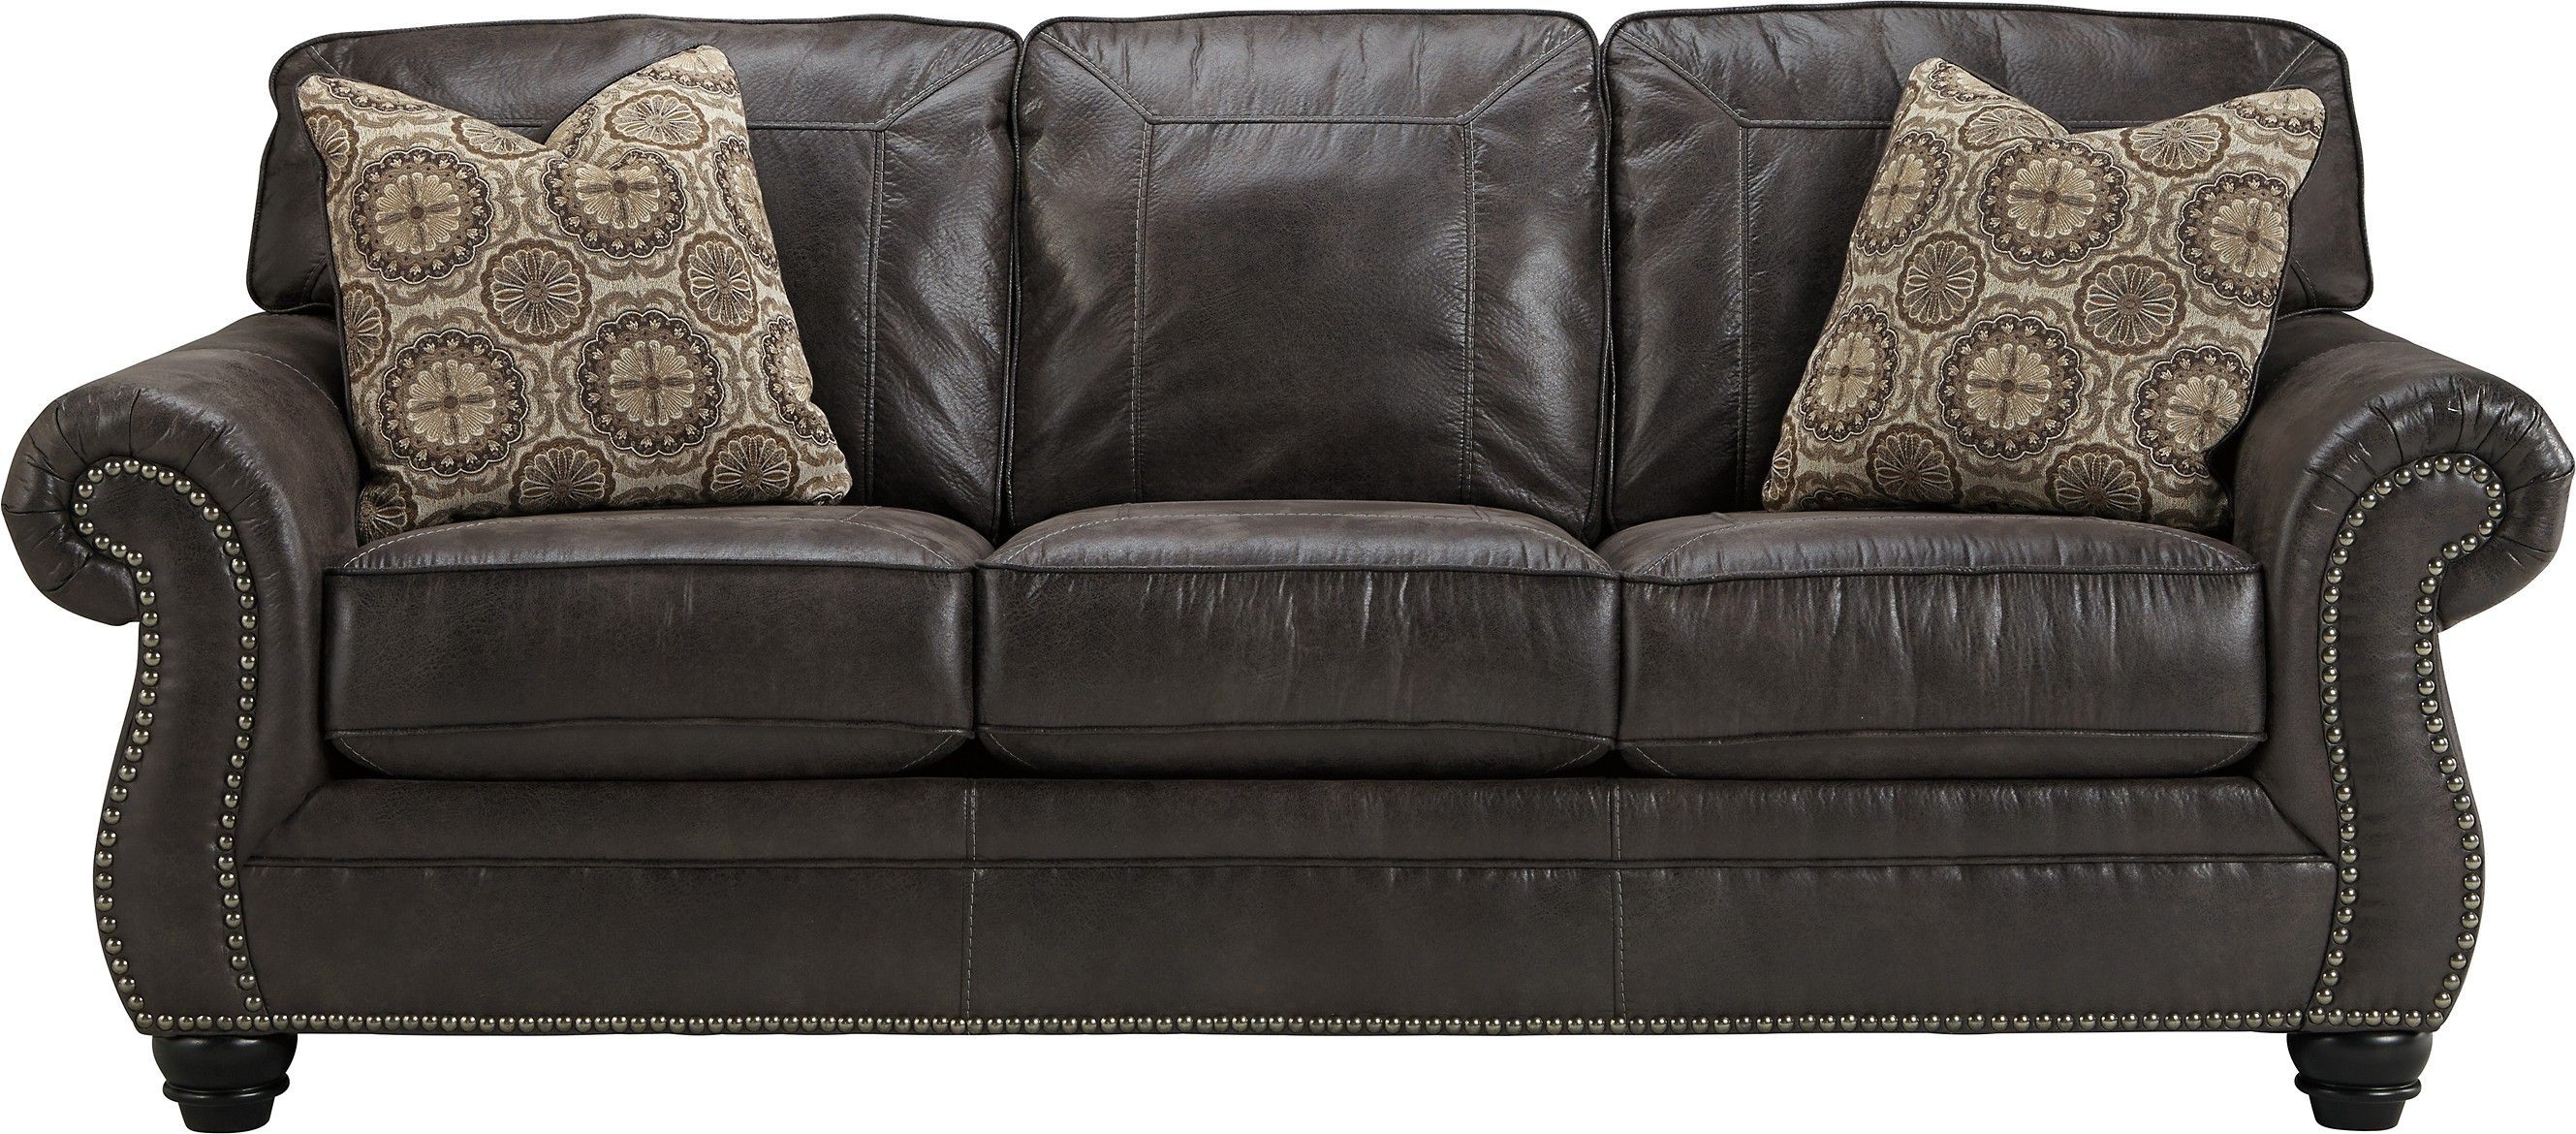 Best Ashley Breville 8000438 Benchcraft Sofa Faux Leather Sofa Traditional Sofa Charcoal Sofa 400 x 300